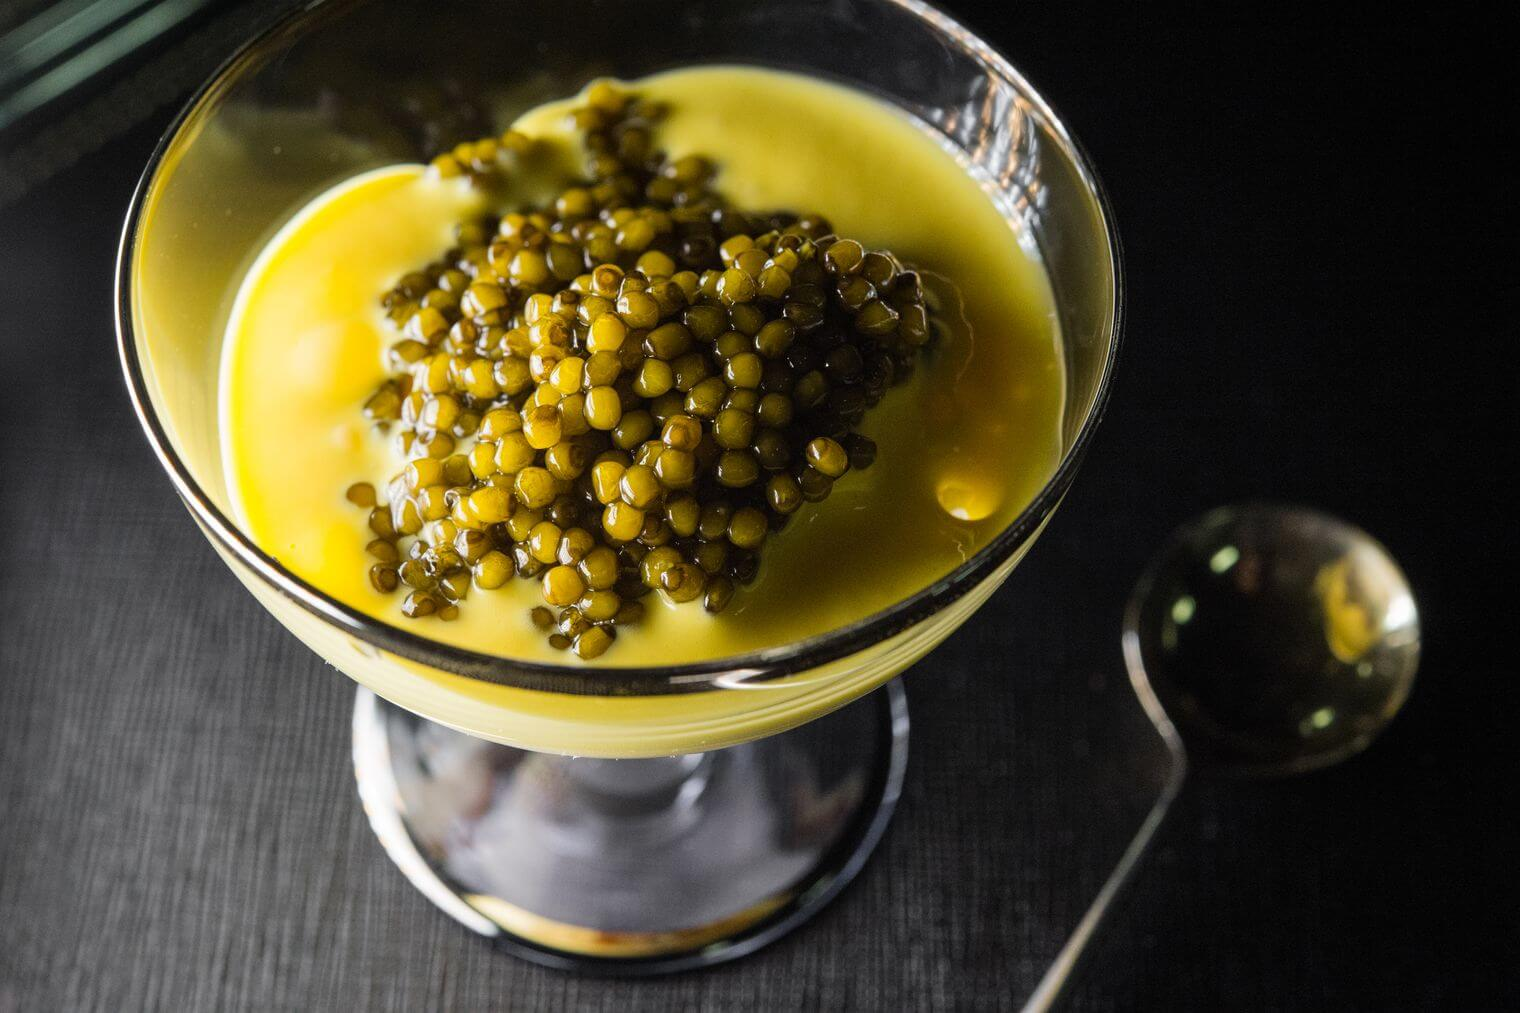 Where to Look for Caviar Substitutes